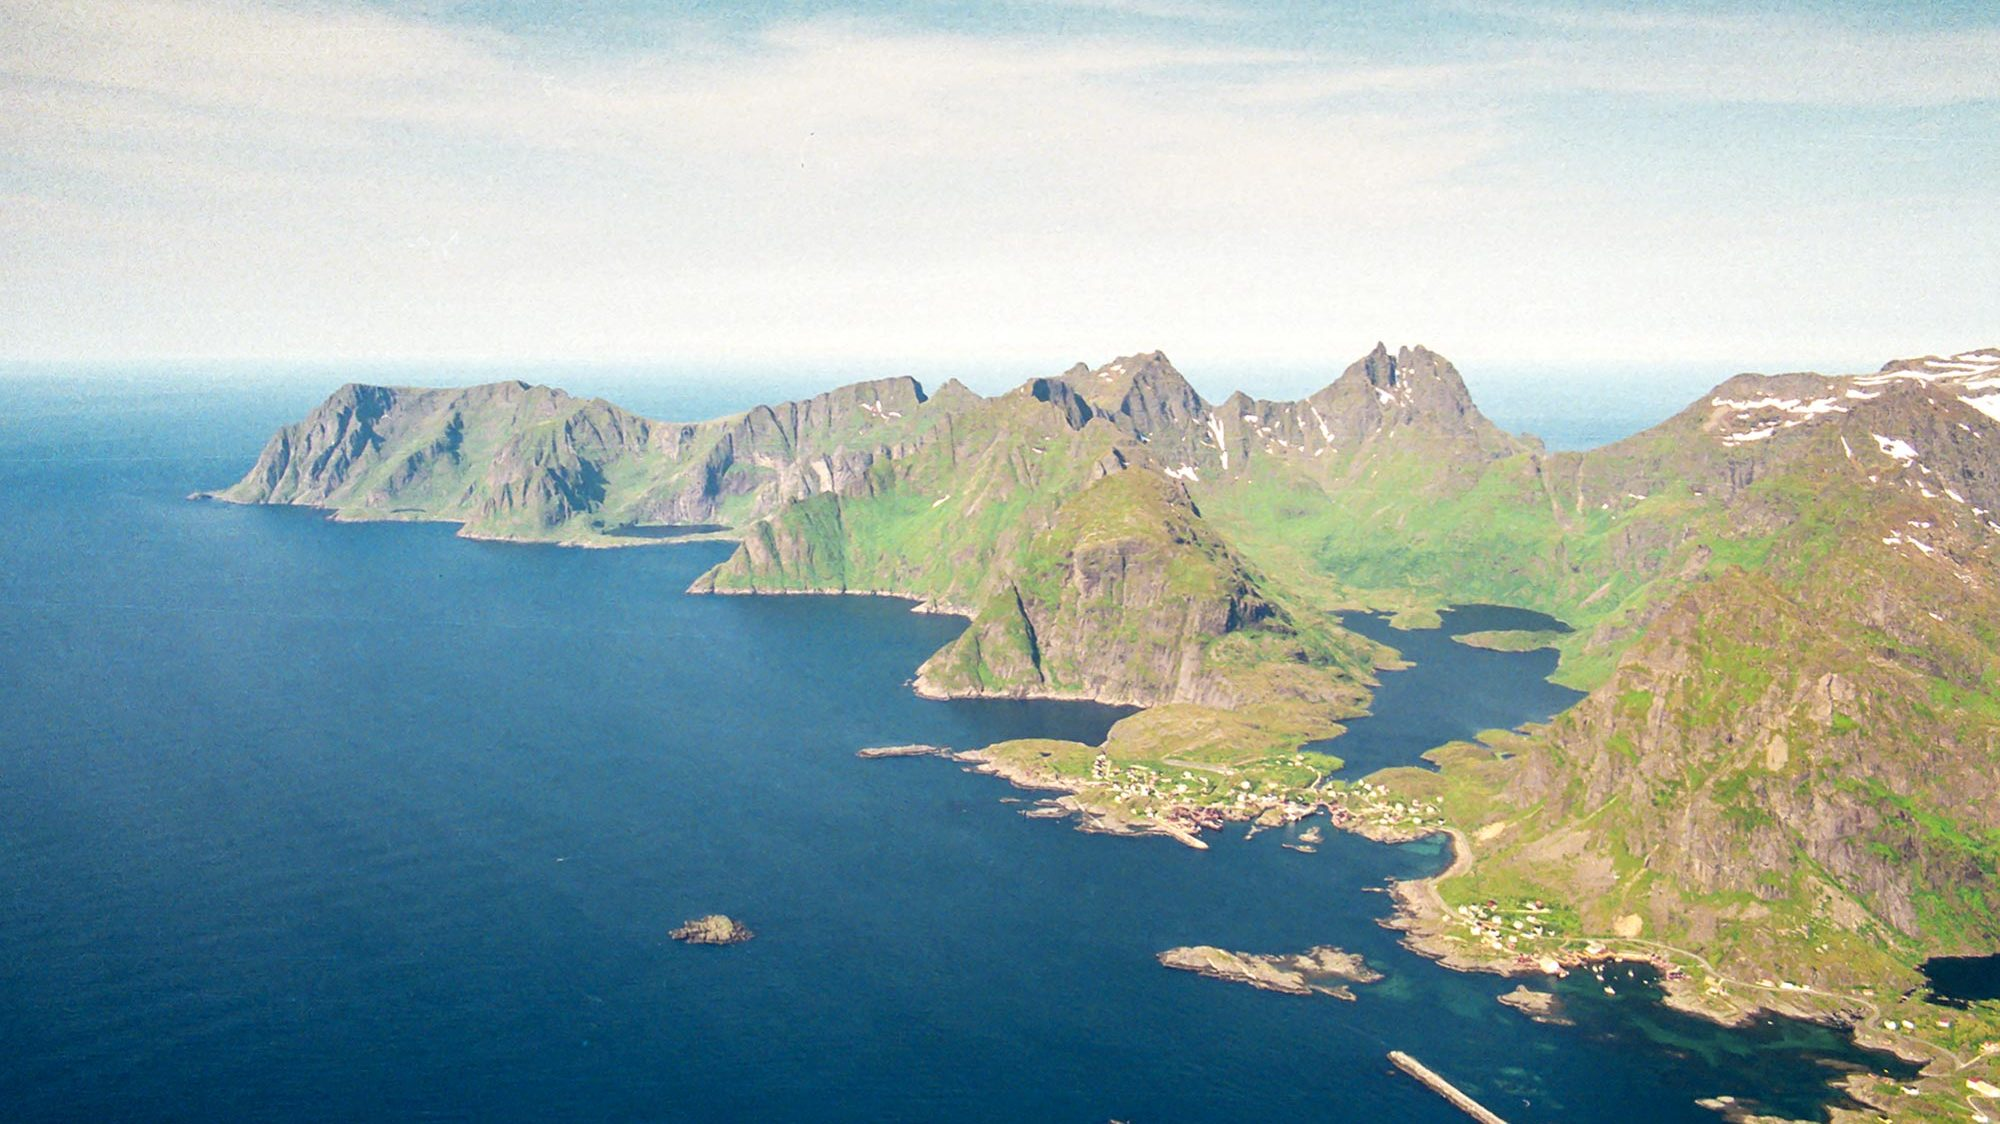 Å i Lofoten and the Moskenesstraumen